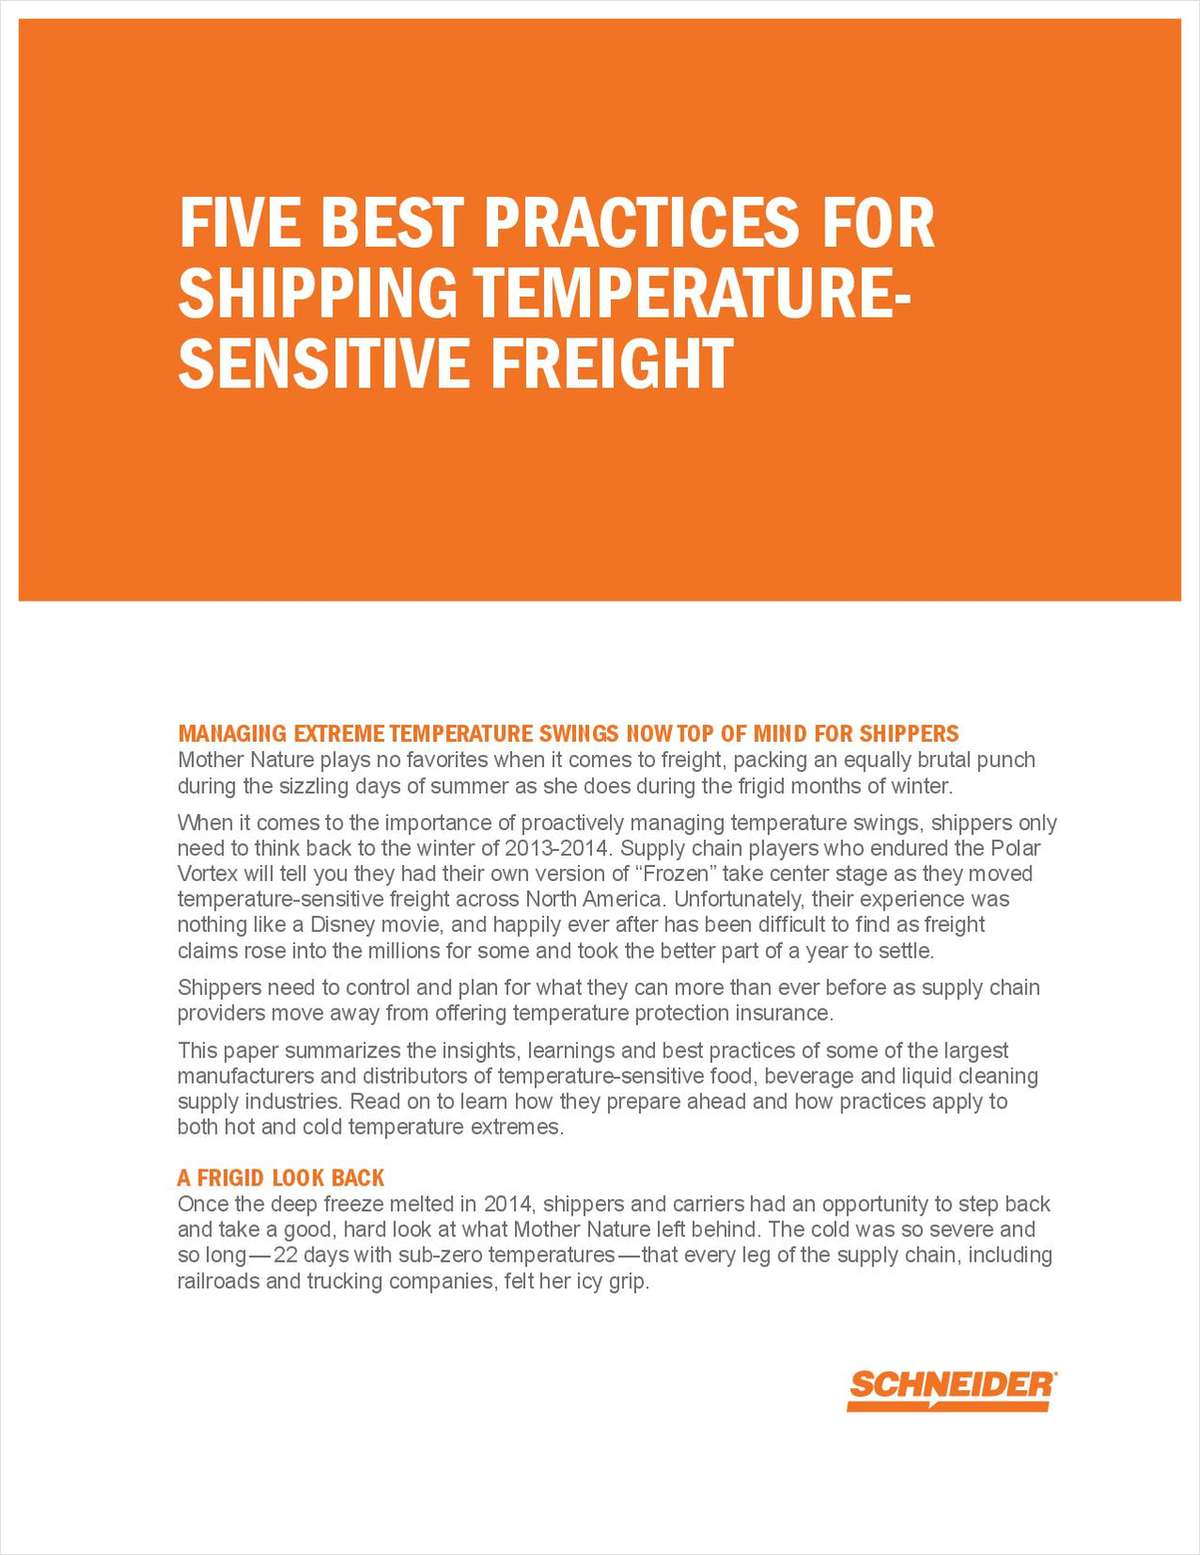 Five Best Practices the Polar Vortex Taught Shippers About Temperature Protection